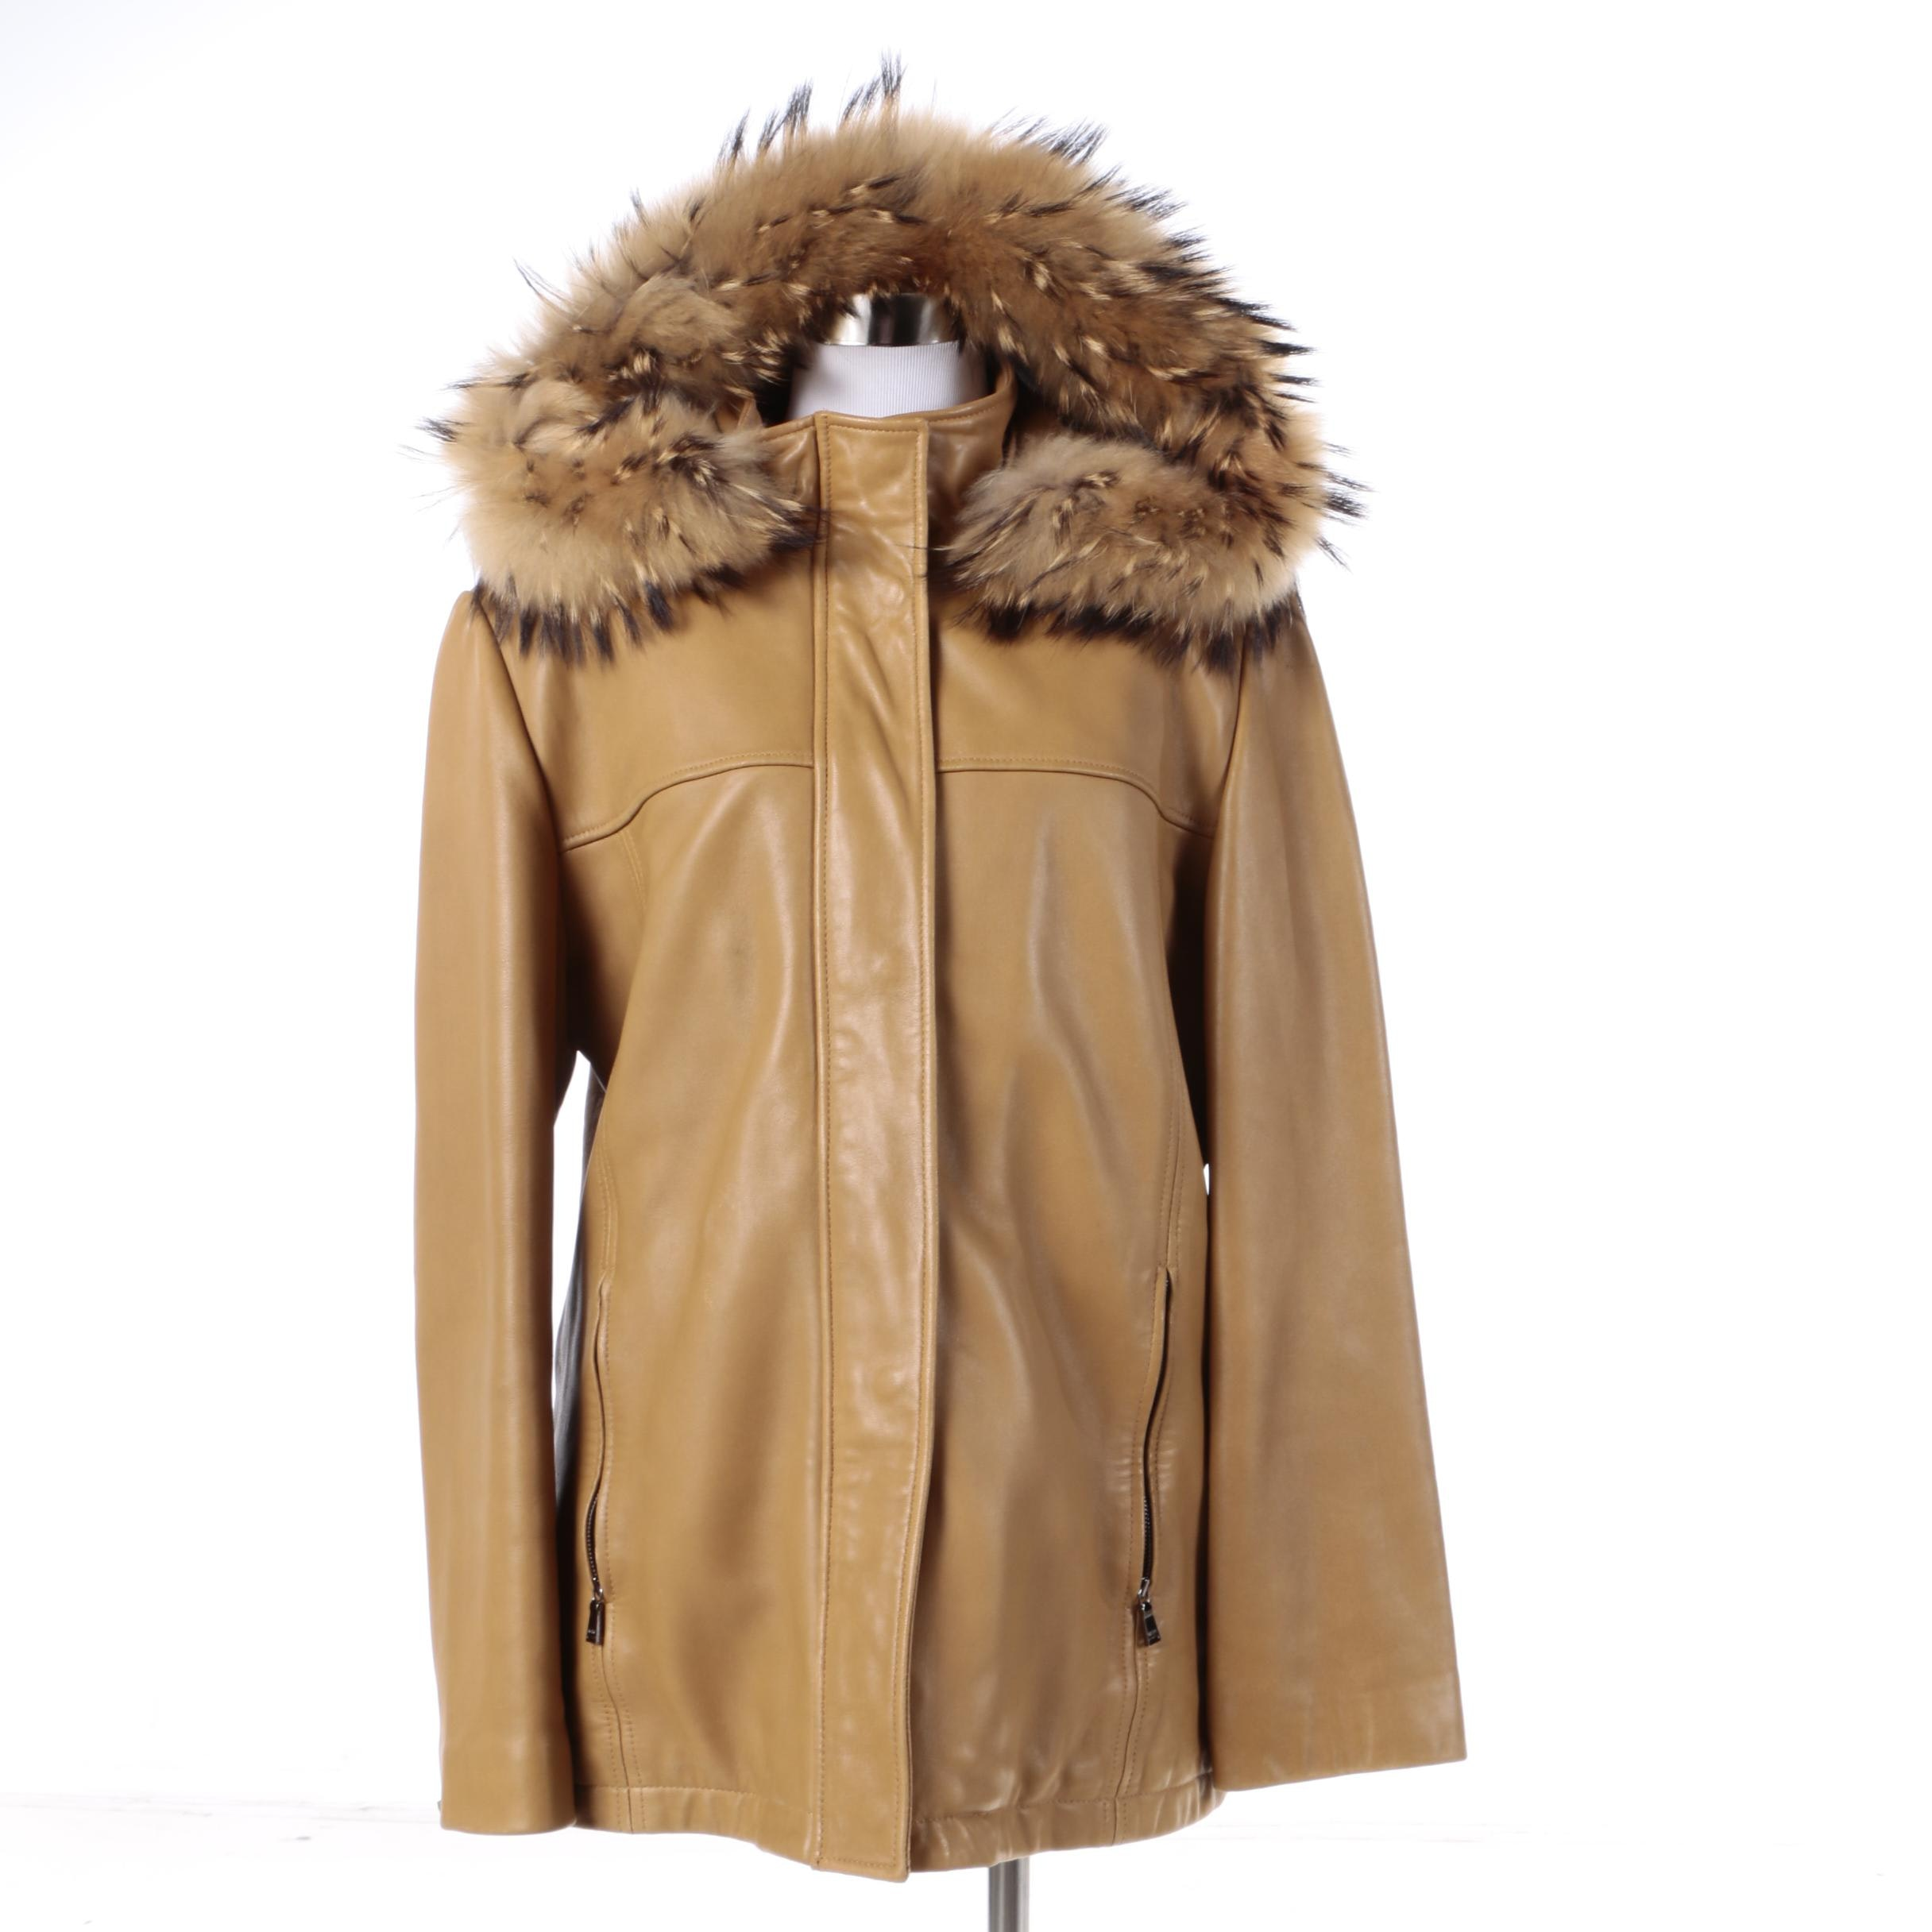 Women's Marc New York Andrew Marc Tan Leather Coat with Raccoon Fur Trim